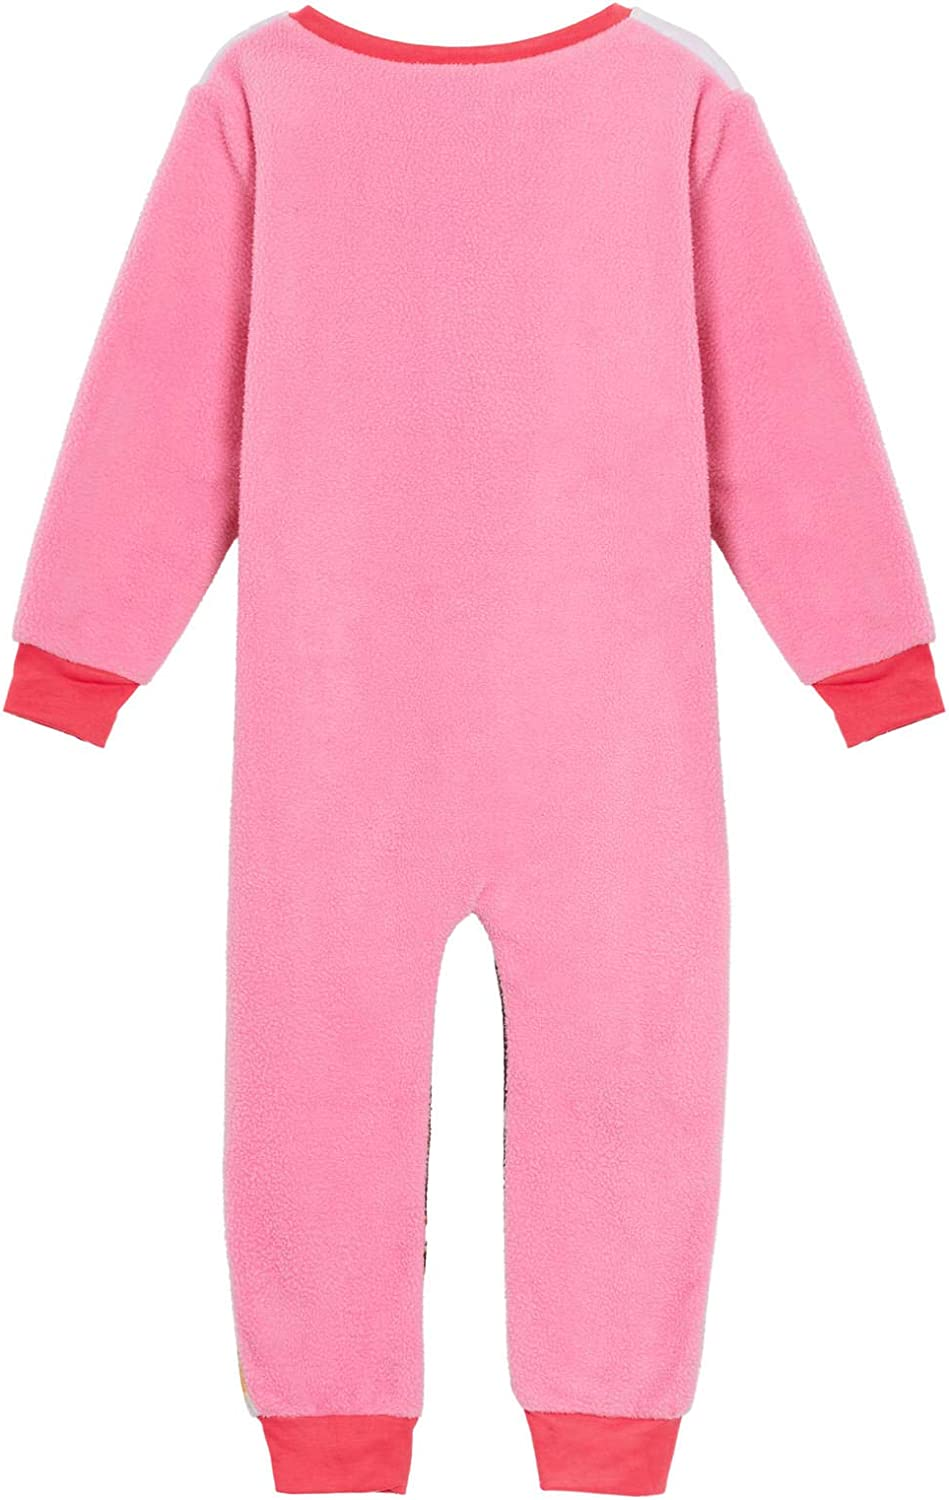 DreamWorks Spirit Riding Free Girls Fleece Onesie All in One Pyjamas Kids Horse Sleepsuit Pjs Nightwear